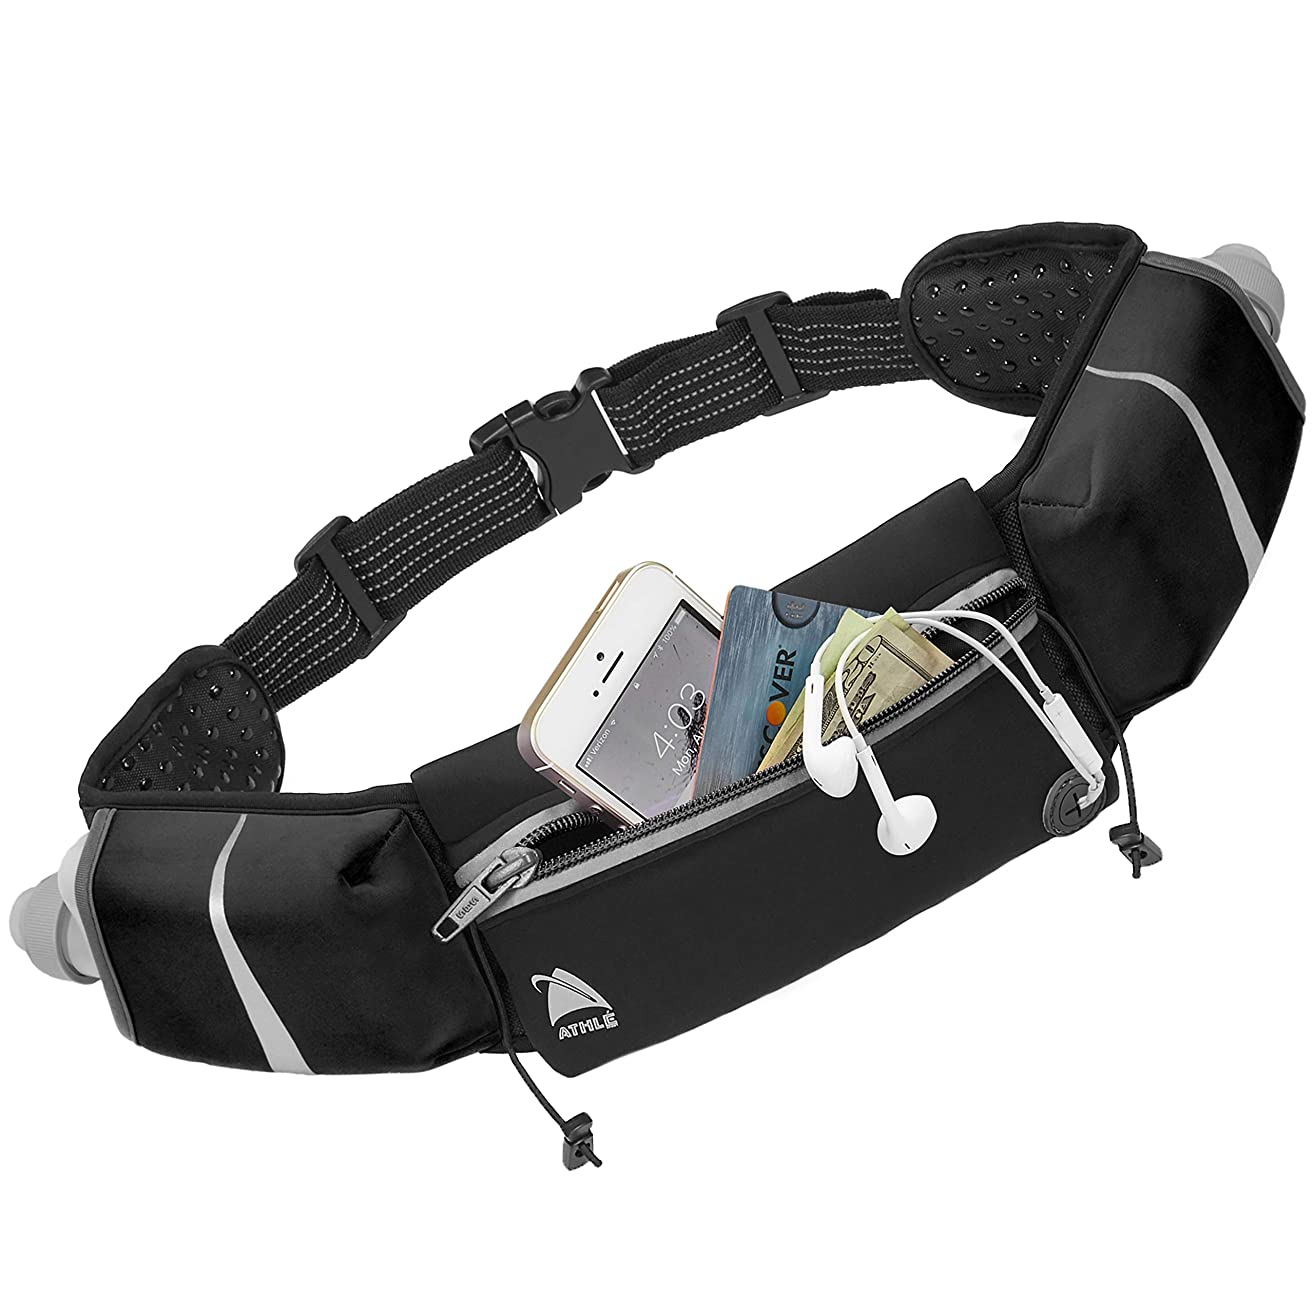 Athlé Running Belt - 2 10oz Water Bottles, Large Fanny Pack Pocket Fits All Phones and Wallet, Bib Fasteners, Adjustable One Size Fits All Waist Band, Key Clip, 360° Reflective